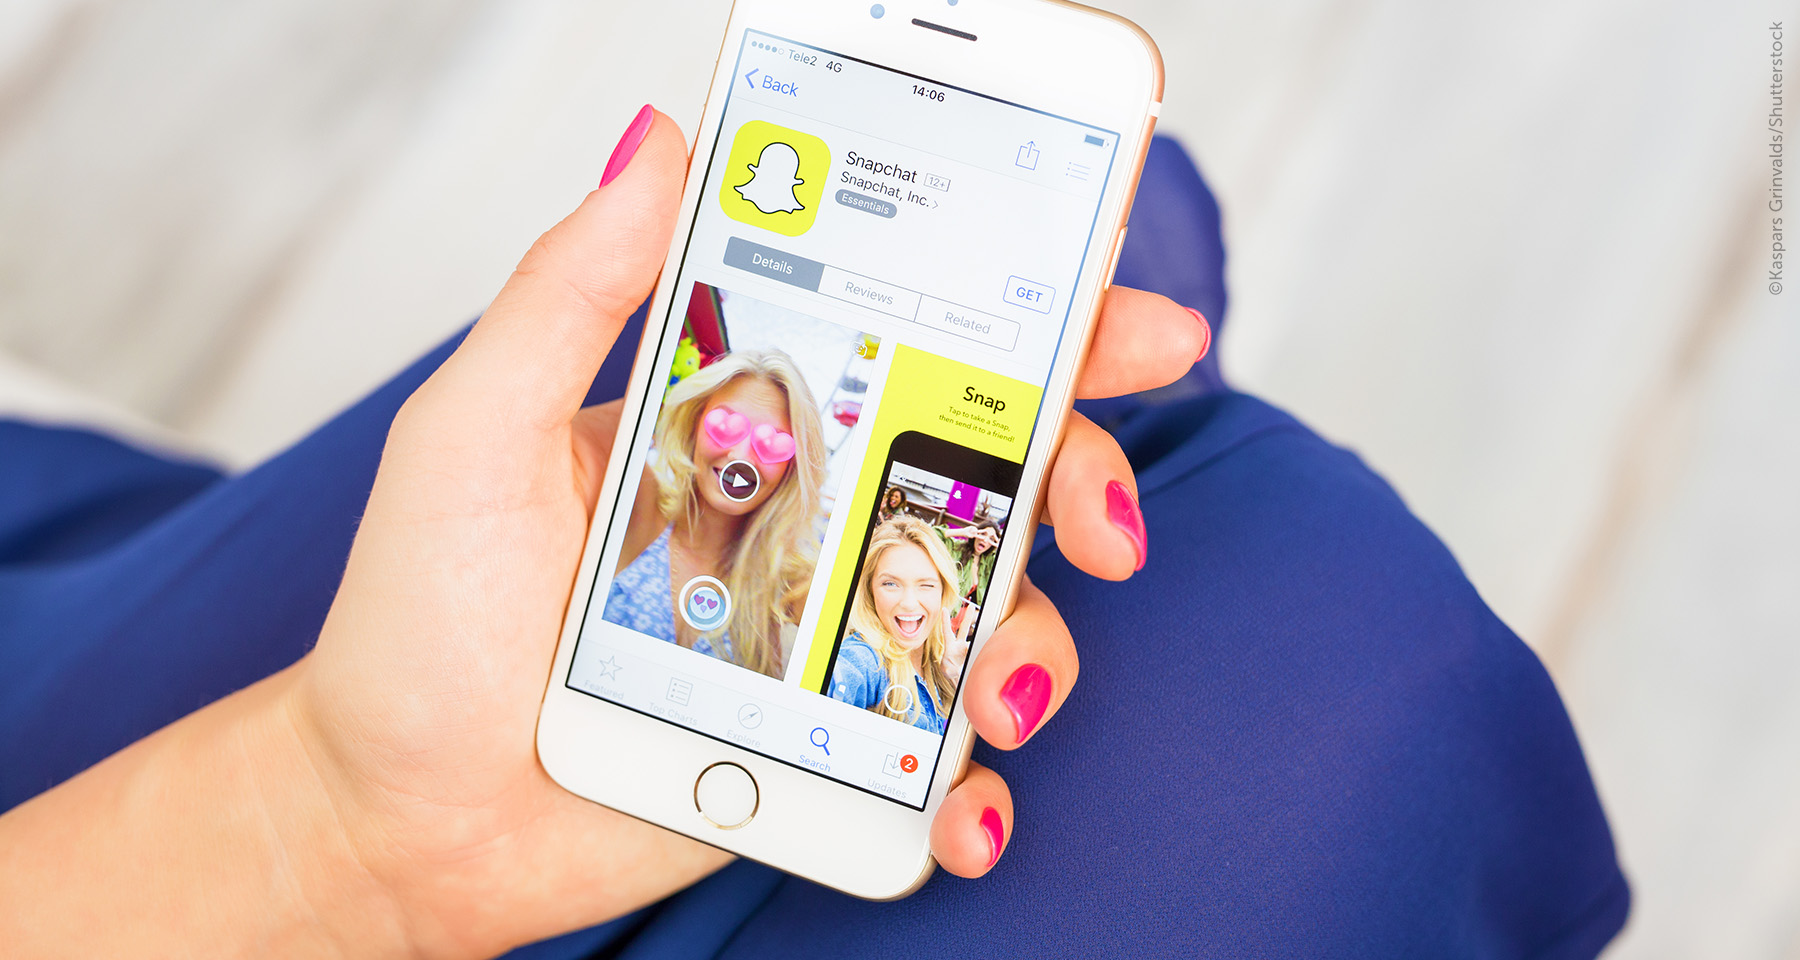 Snapchat, Miranda Kerr, and investment in innovation